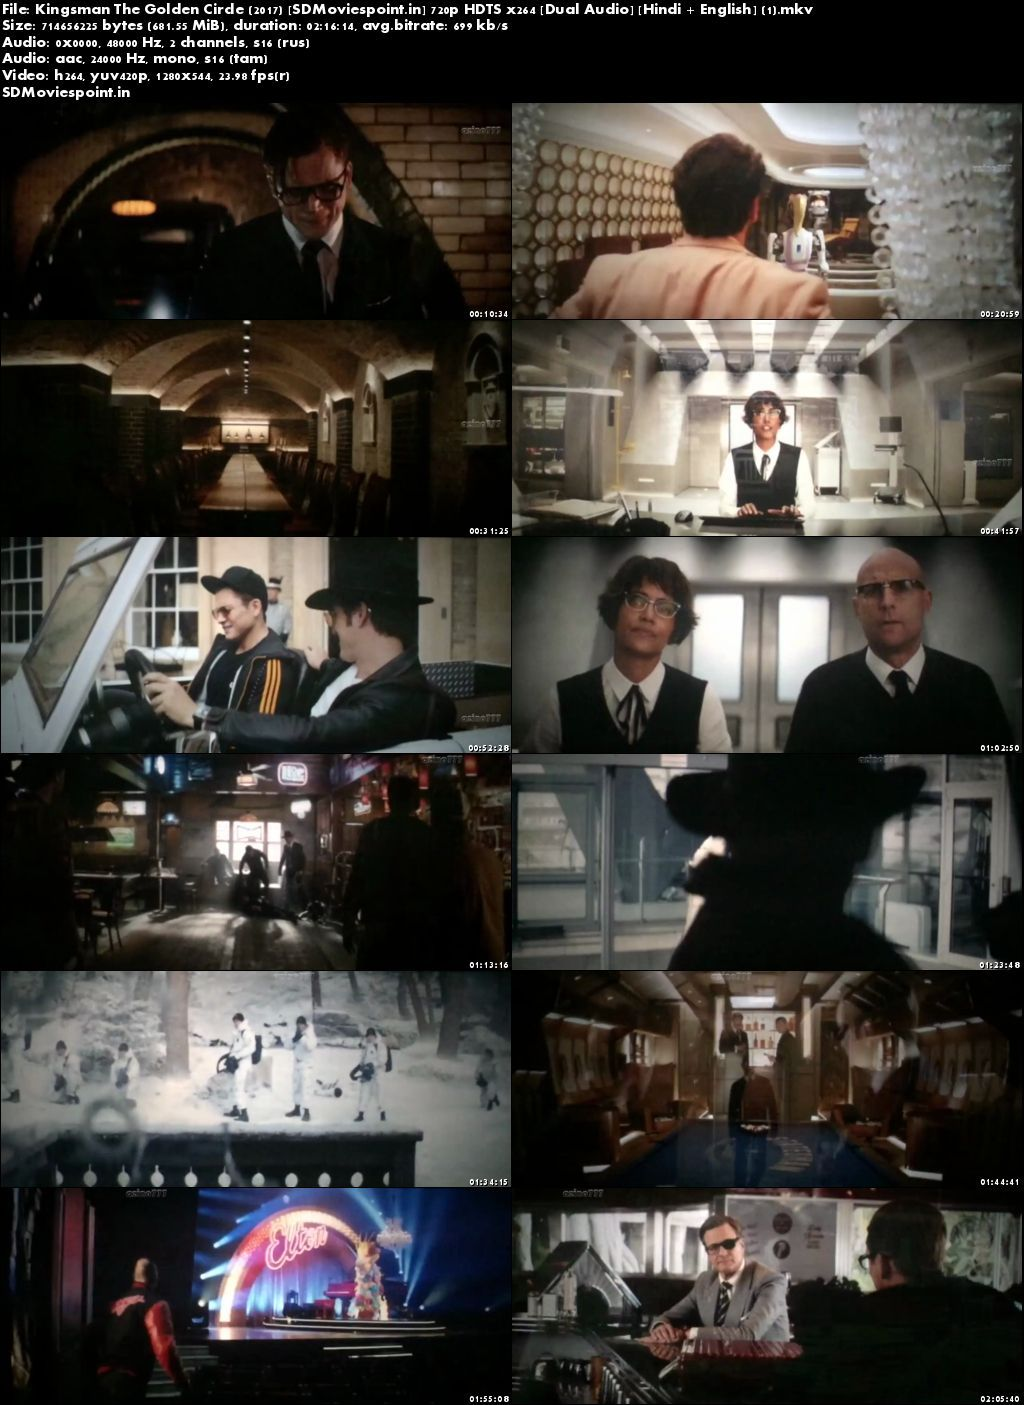 Screen Shots Kingsman The Golden Circle (2017) Full HD Movie Download Dual Auido    Film Details.  Name: – Kingsman: The Golden Circle (2017) IMDB Rating: – 7.3/10 Director: – Matthew Vaughn Genre: – Action, Adventure, Comedy Language: – Dual Audio (Tamil/Russian) Released Date: – 20 September 2017 (UK) Stars Cast: – Taron Egerton, Colin Firth, Mark Strong Size: – 681MB Quality: – HDTS More Information.  Story – Movie Upload by SDMoviespoint, When their headquarters are destroyed and the world is held hostage, the Kingsman's journey leads them to the discovery of an allied spy organization in the US. These two elite secret organizations must band together to defeat a common enemy. Kingsman: The Golden Circle (2017) Full Hindi Movie 720p In Full HD Download. Free Download Kingsman: The Golden Circle (2017) Hindi Movie Full 720p HD High Definition with Single Download links. By Sdmoviespoint Kingsman: The Golden Circle (2017) Full Movie Download Free. IMDB Screen Shoot    Download Torrent  Direct Download  Watch Online  Kingsman: The Secret Service (2014) Full HD Movie Download Hindi Dubbed 1080p Take Me Home Tonight 2011Full HD Movie Download Hindi Dubbed Fast And Furious 8 Full Movie in Hindi Dubbed HD xXx Return of Xander Cage 2017 Full Movie Download Hindi Dubbed The Expendables 3 Full HD Movie Download In Hindi Dual Audio 720p